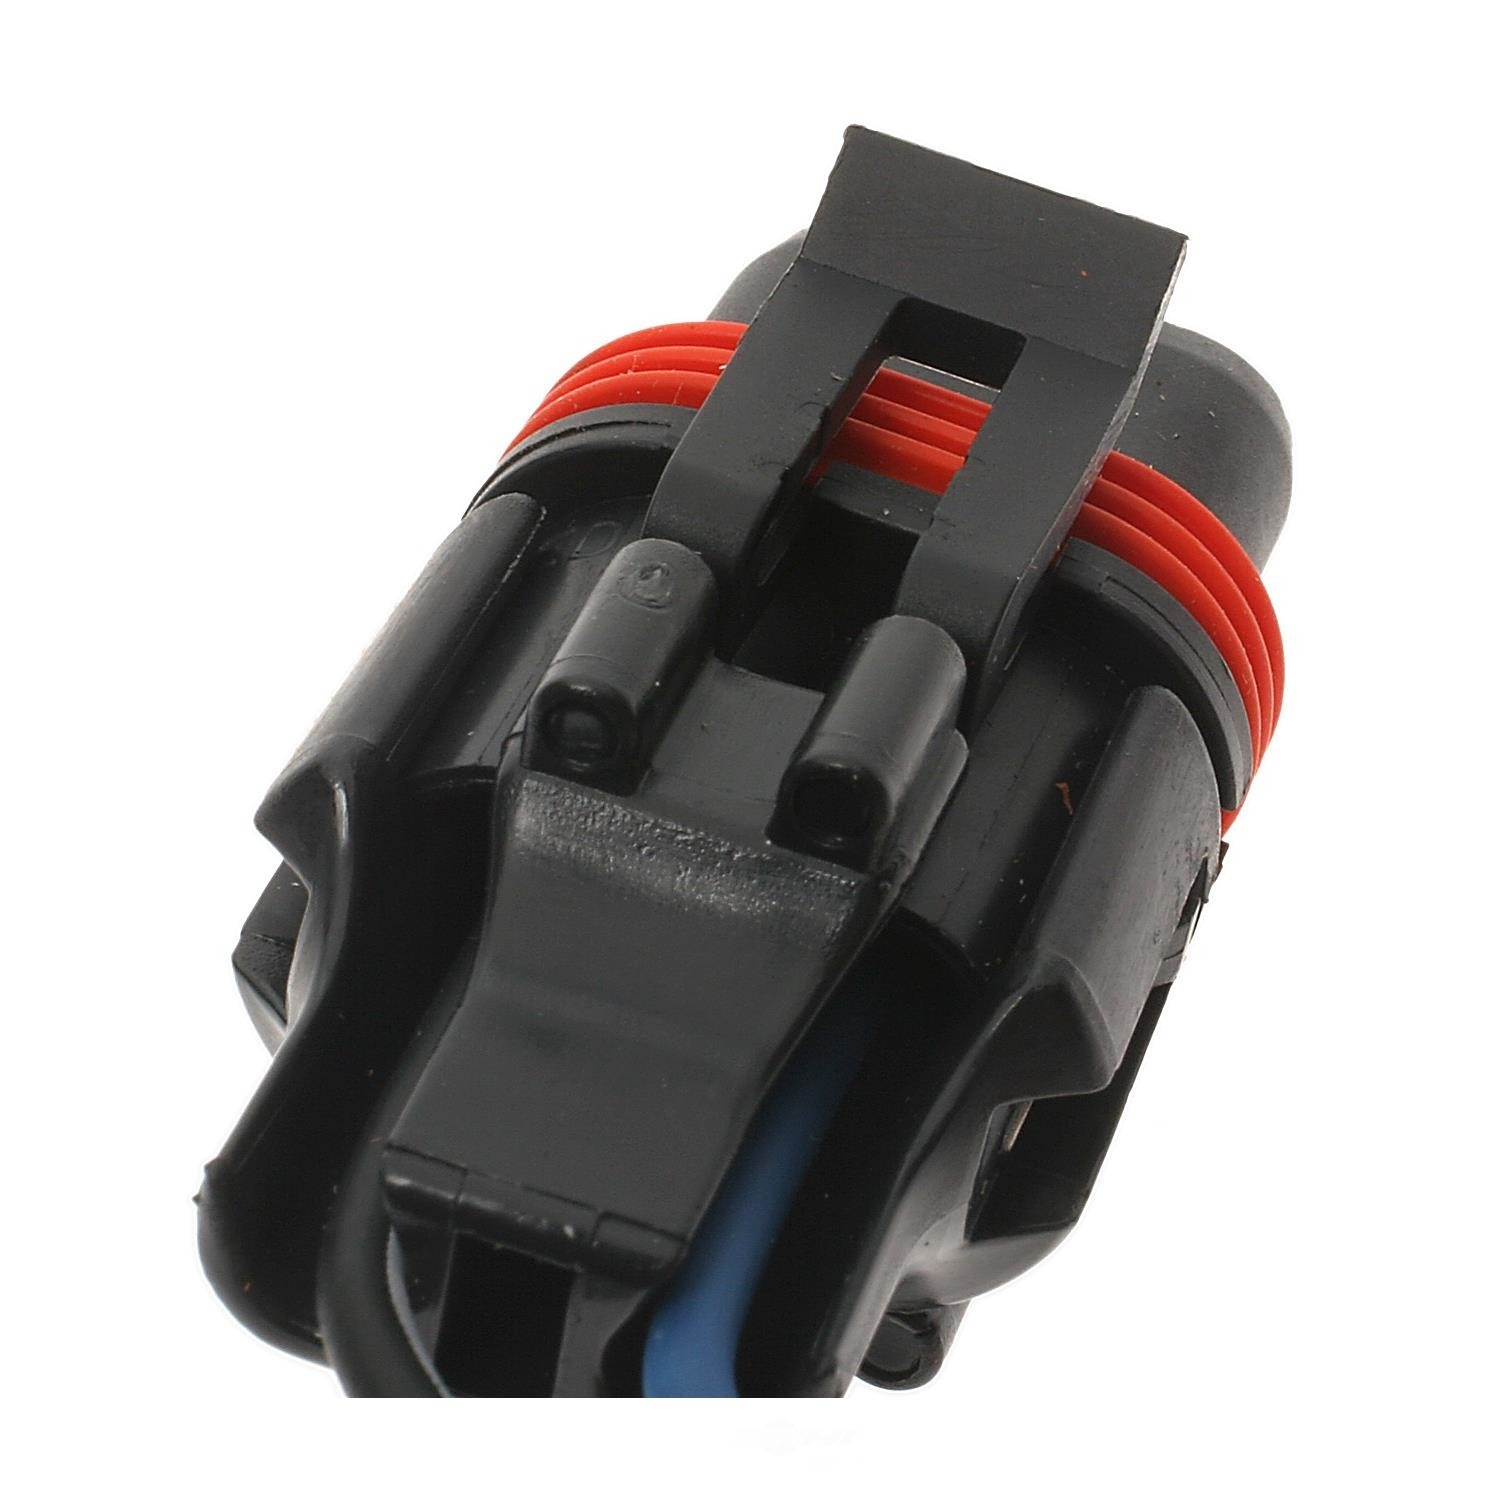 HANDY PACK - Parking Brake Switch Connector - HDY HP4410